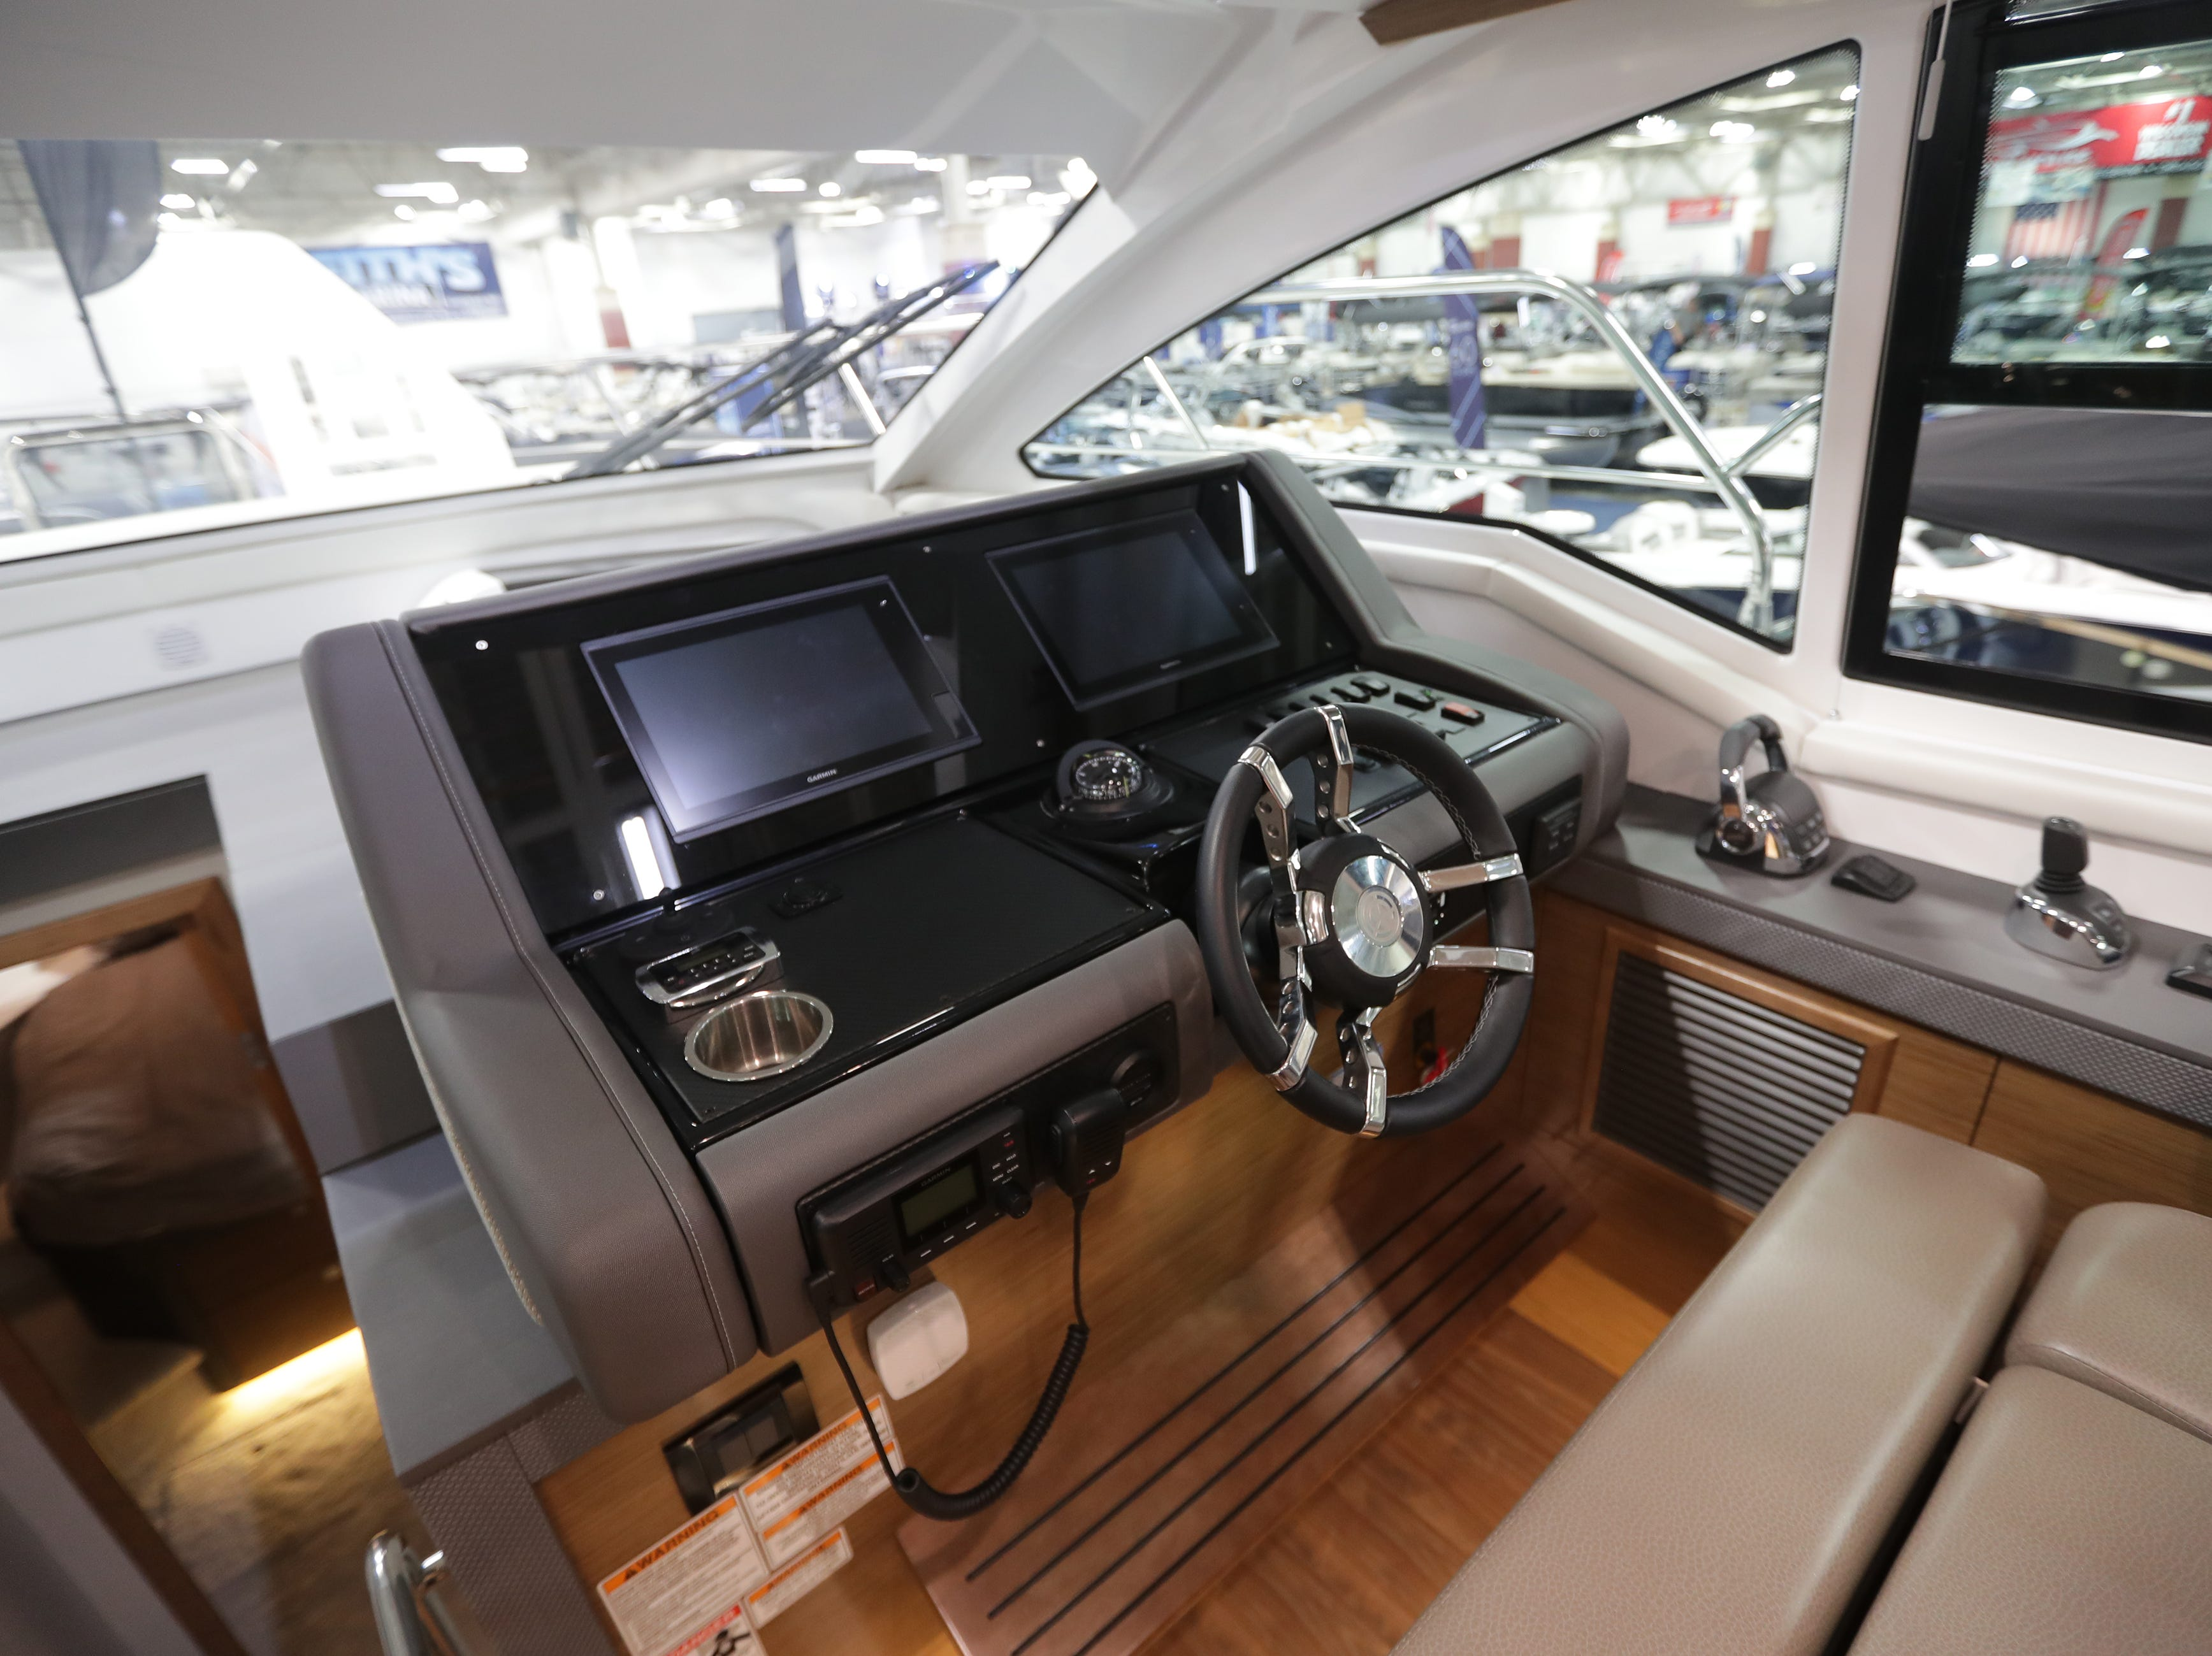 The helm of a 2019 42-foot Cruisers Cantius yacht, which lists for $1,022,244.